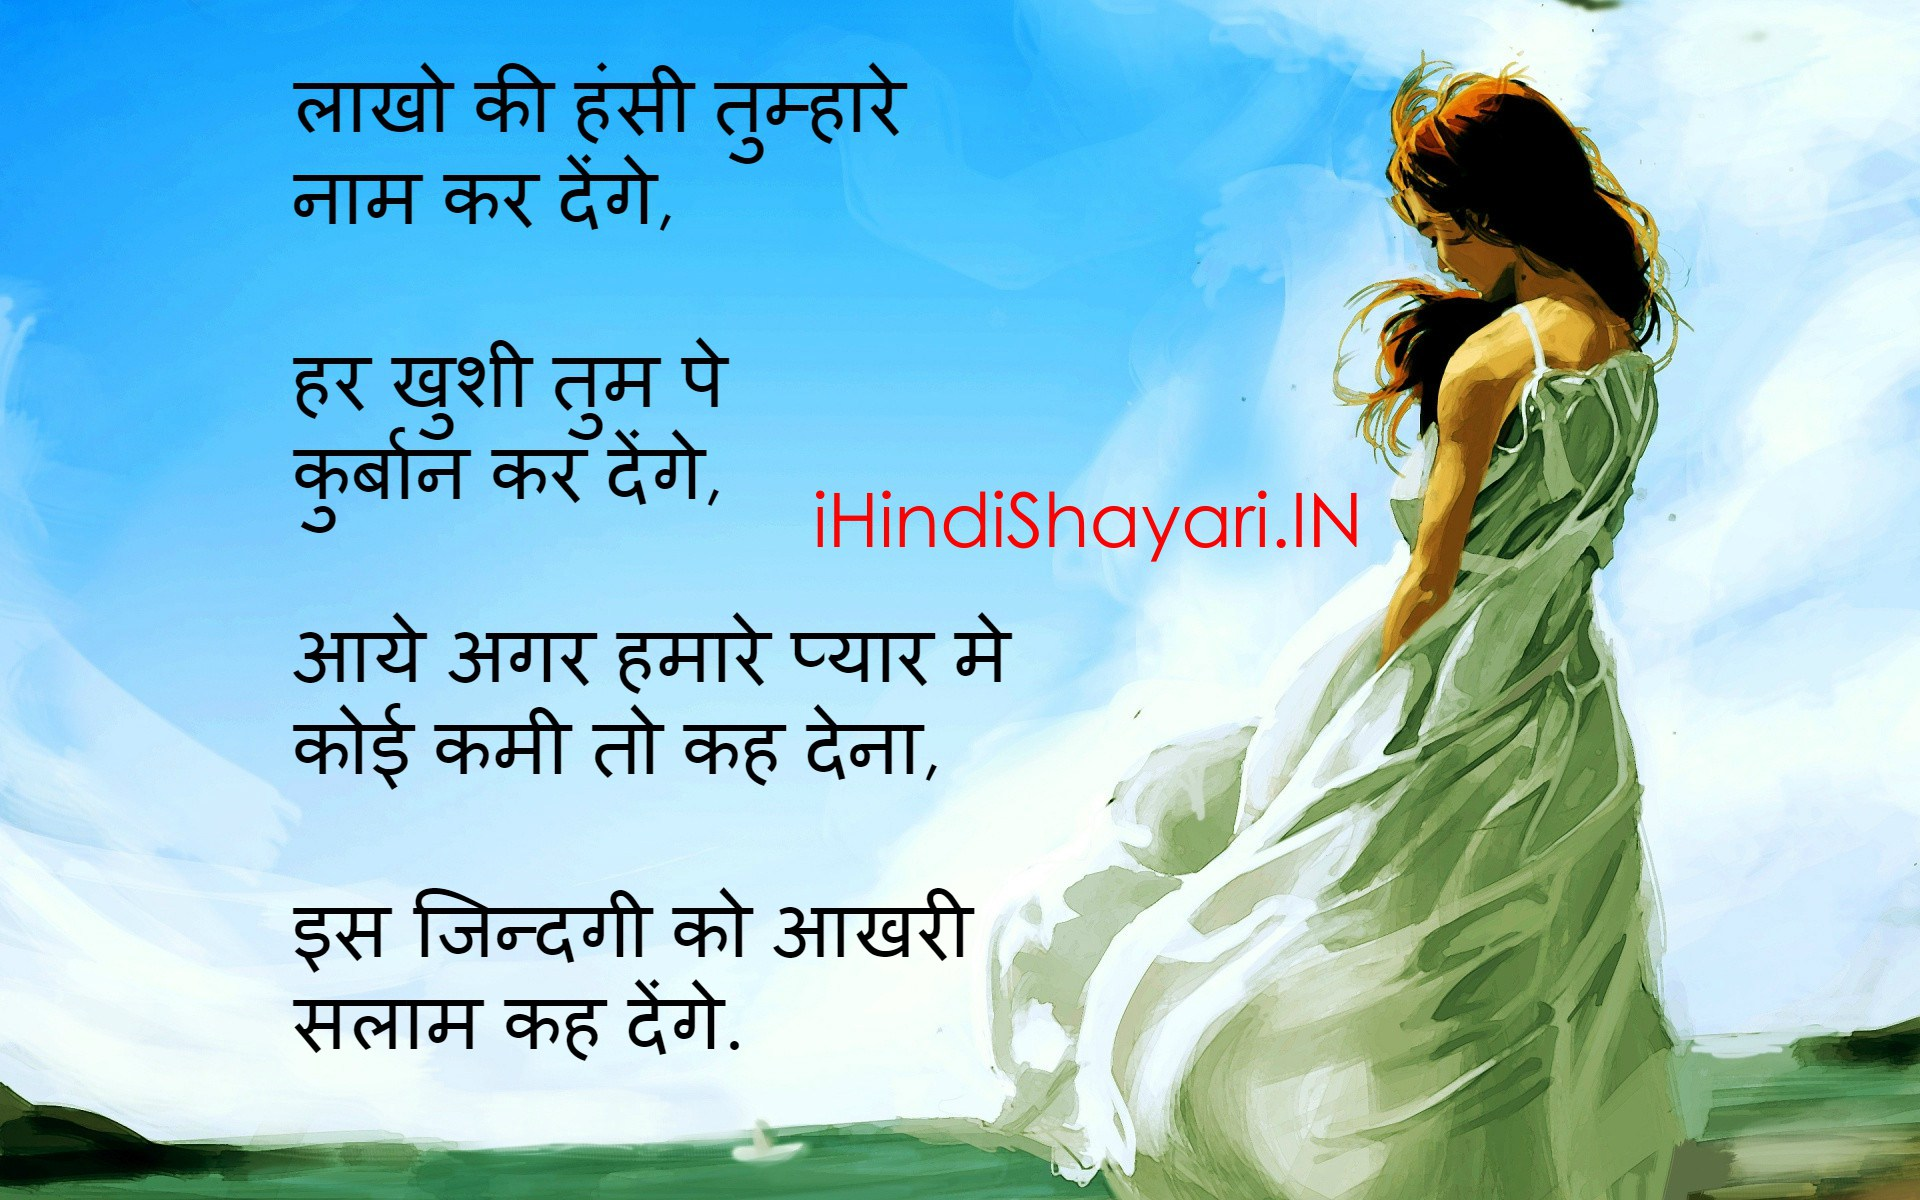 TOP Sad Love Shayari Images Download - Hindi Shayari